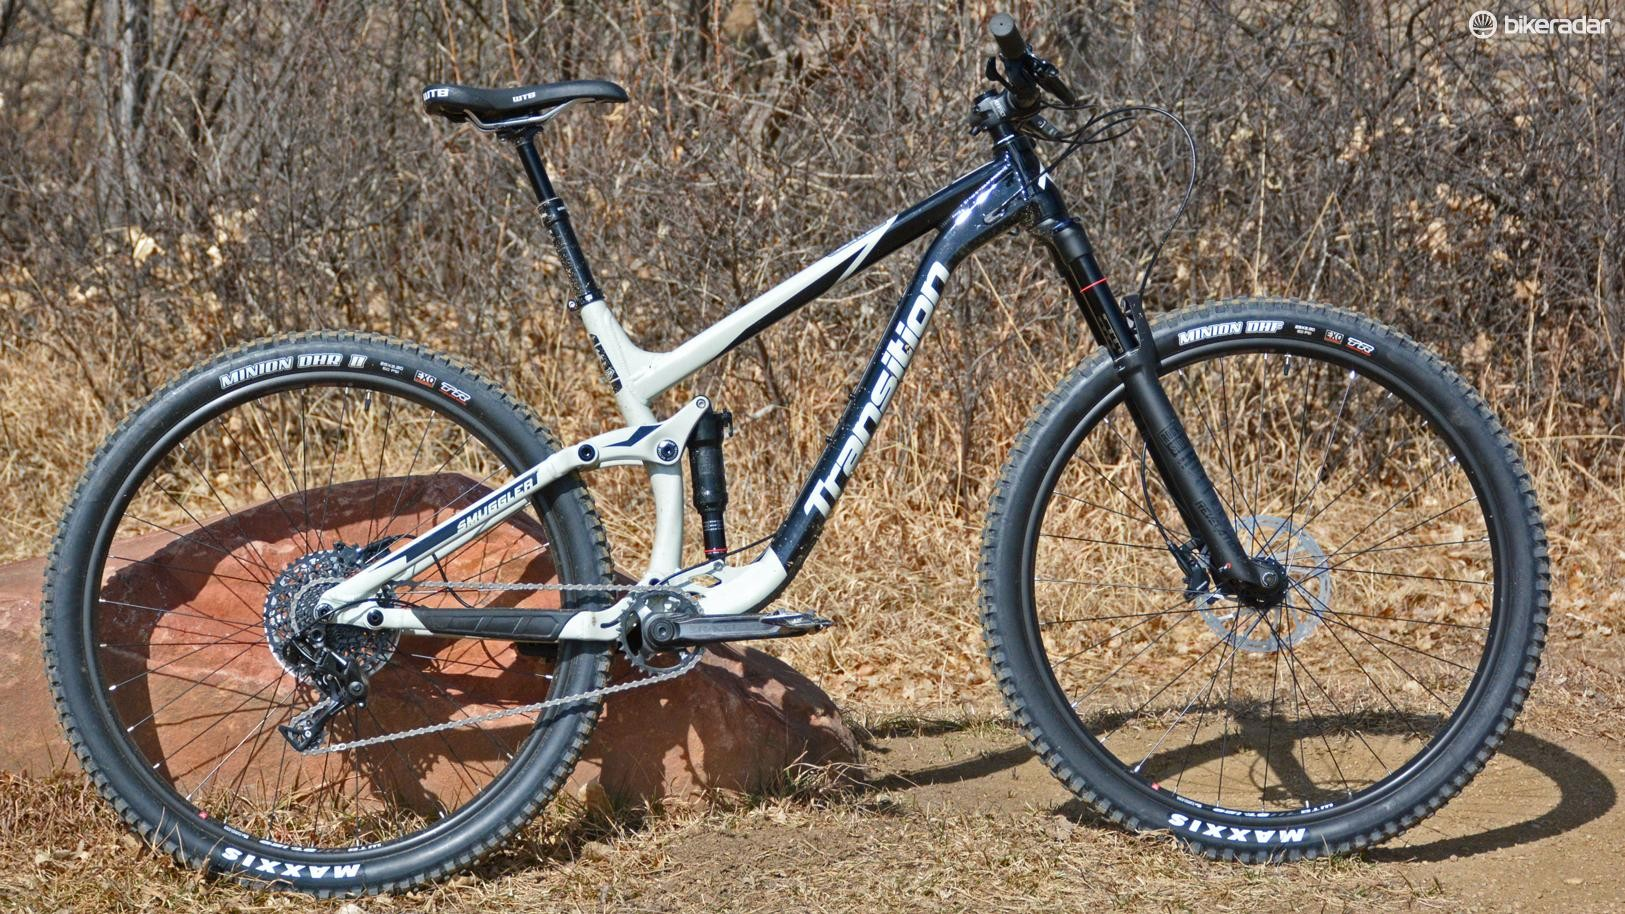 Transition's aluminum Smuggler NX has 29in wheels and 140/120mm of front and rear travel